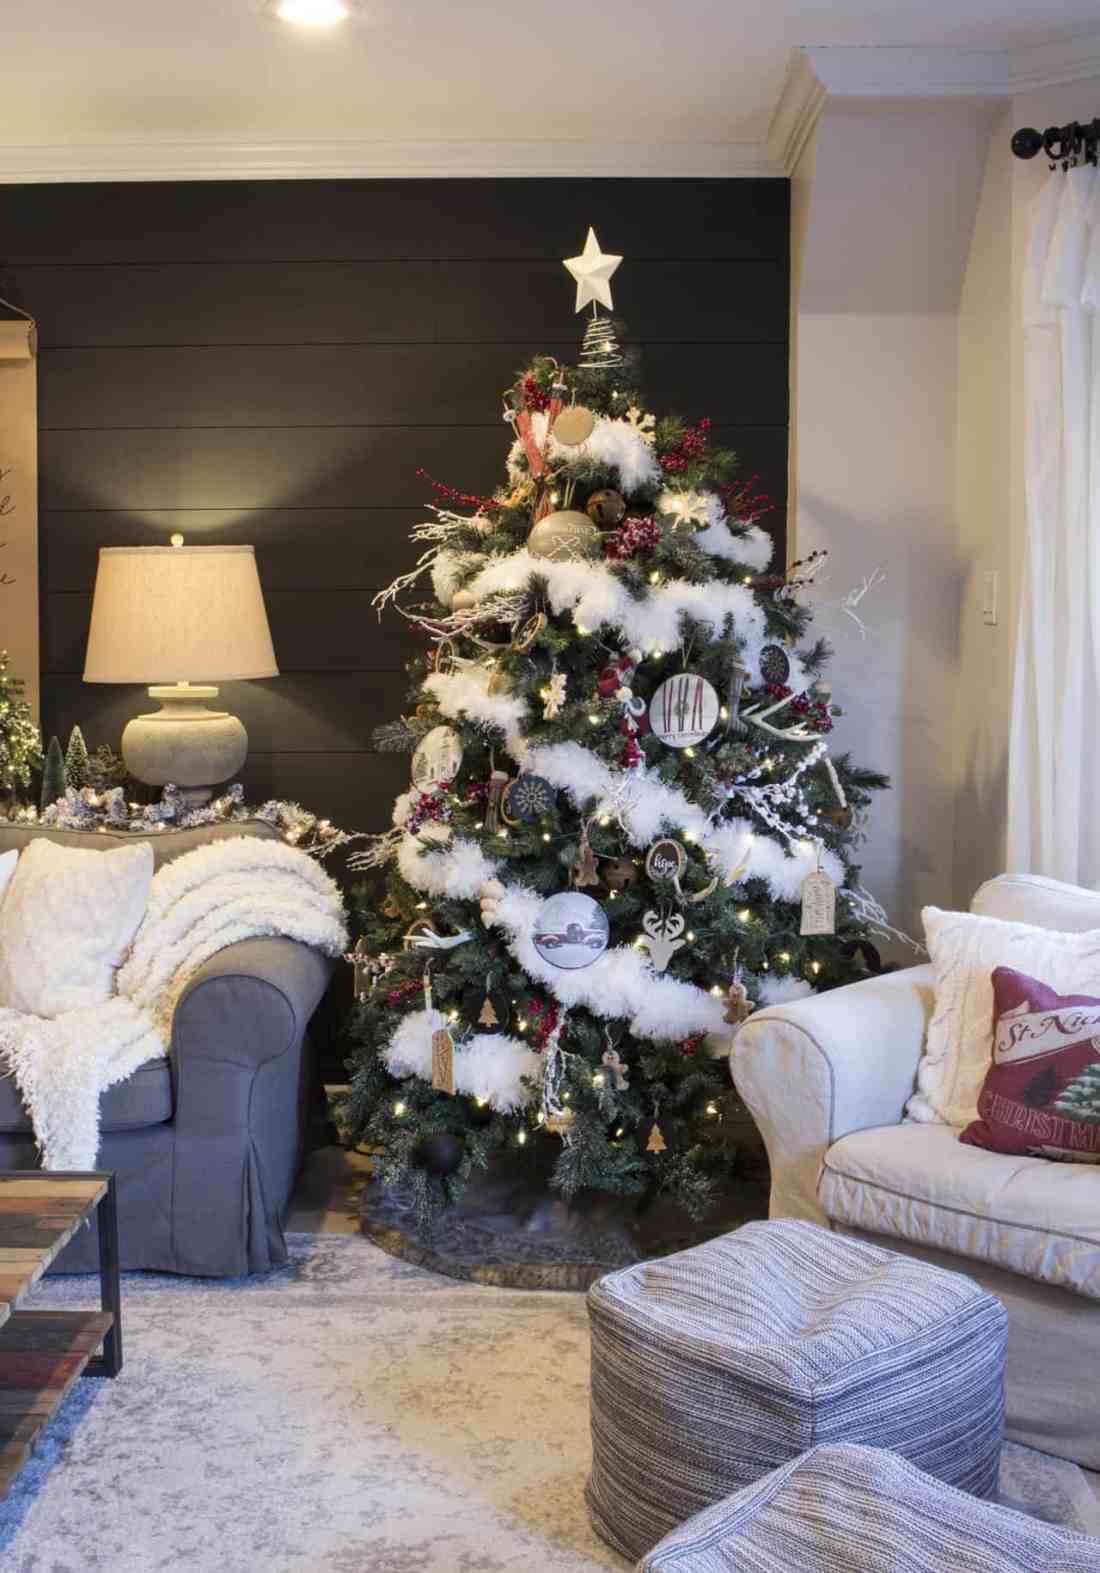 snowy rustic Christmas tree